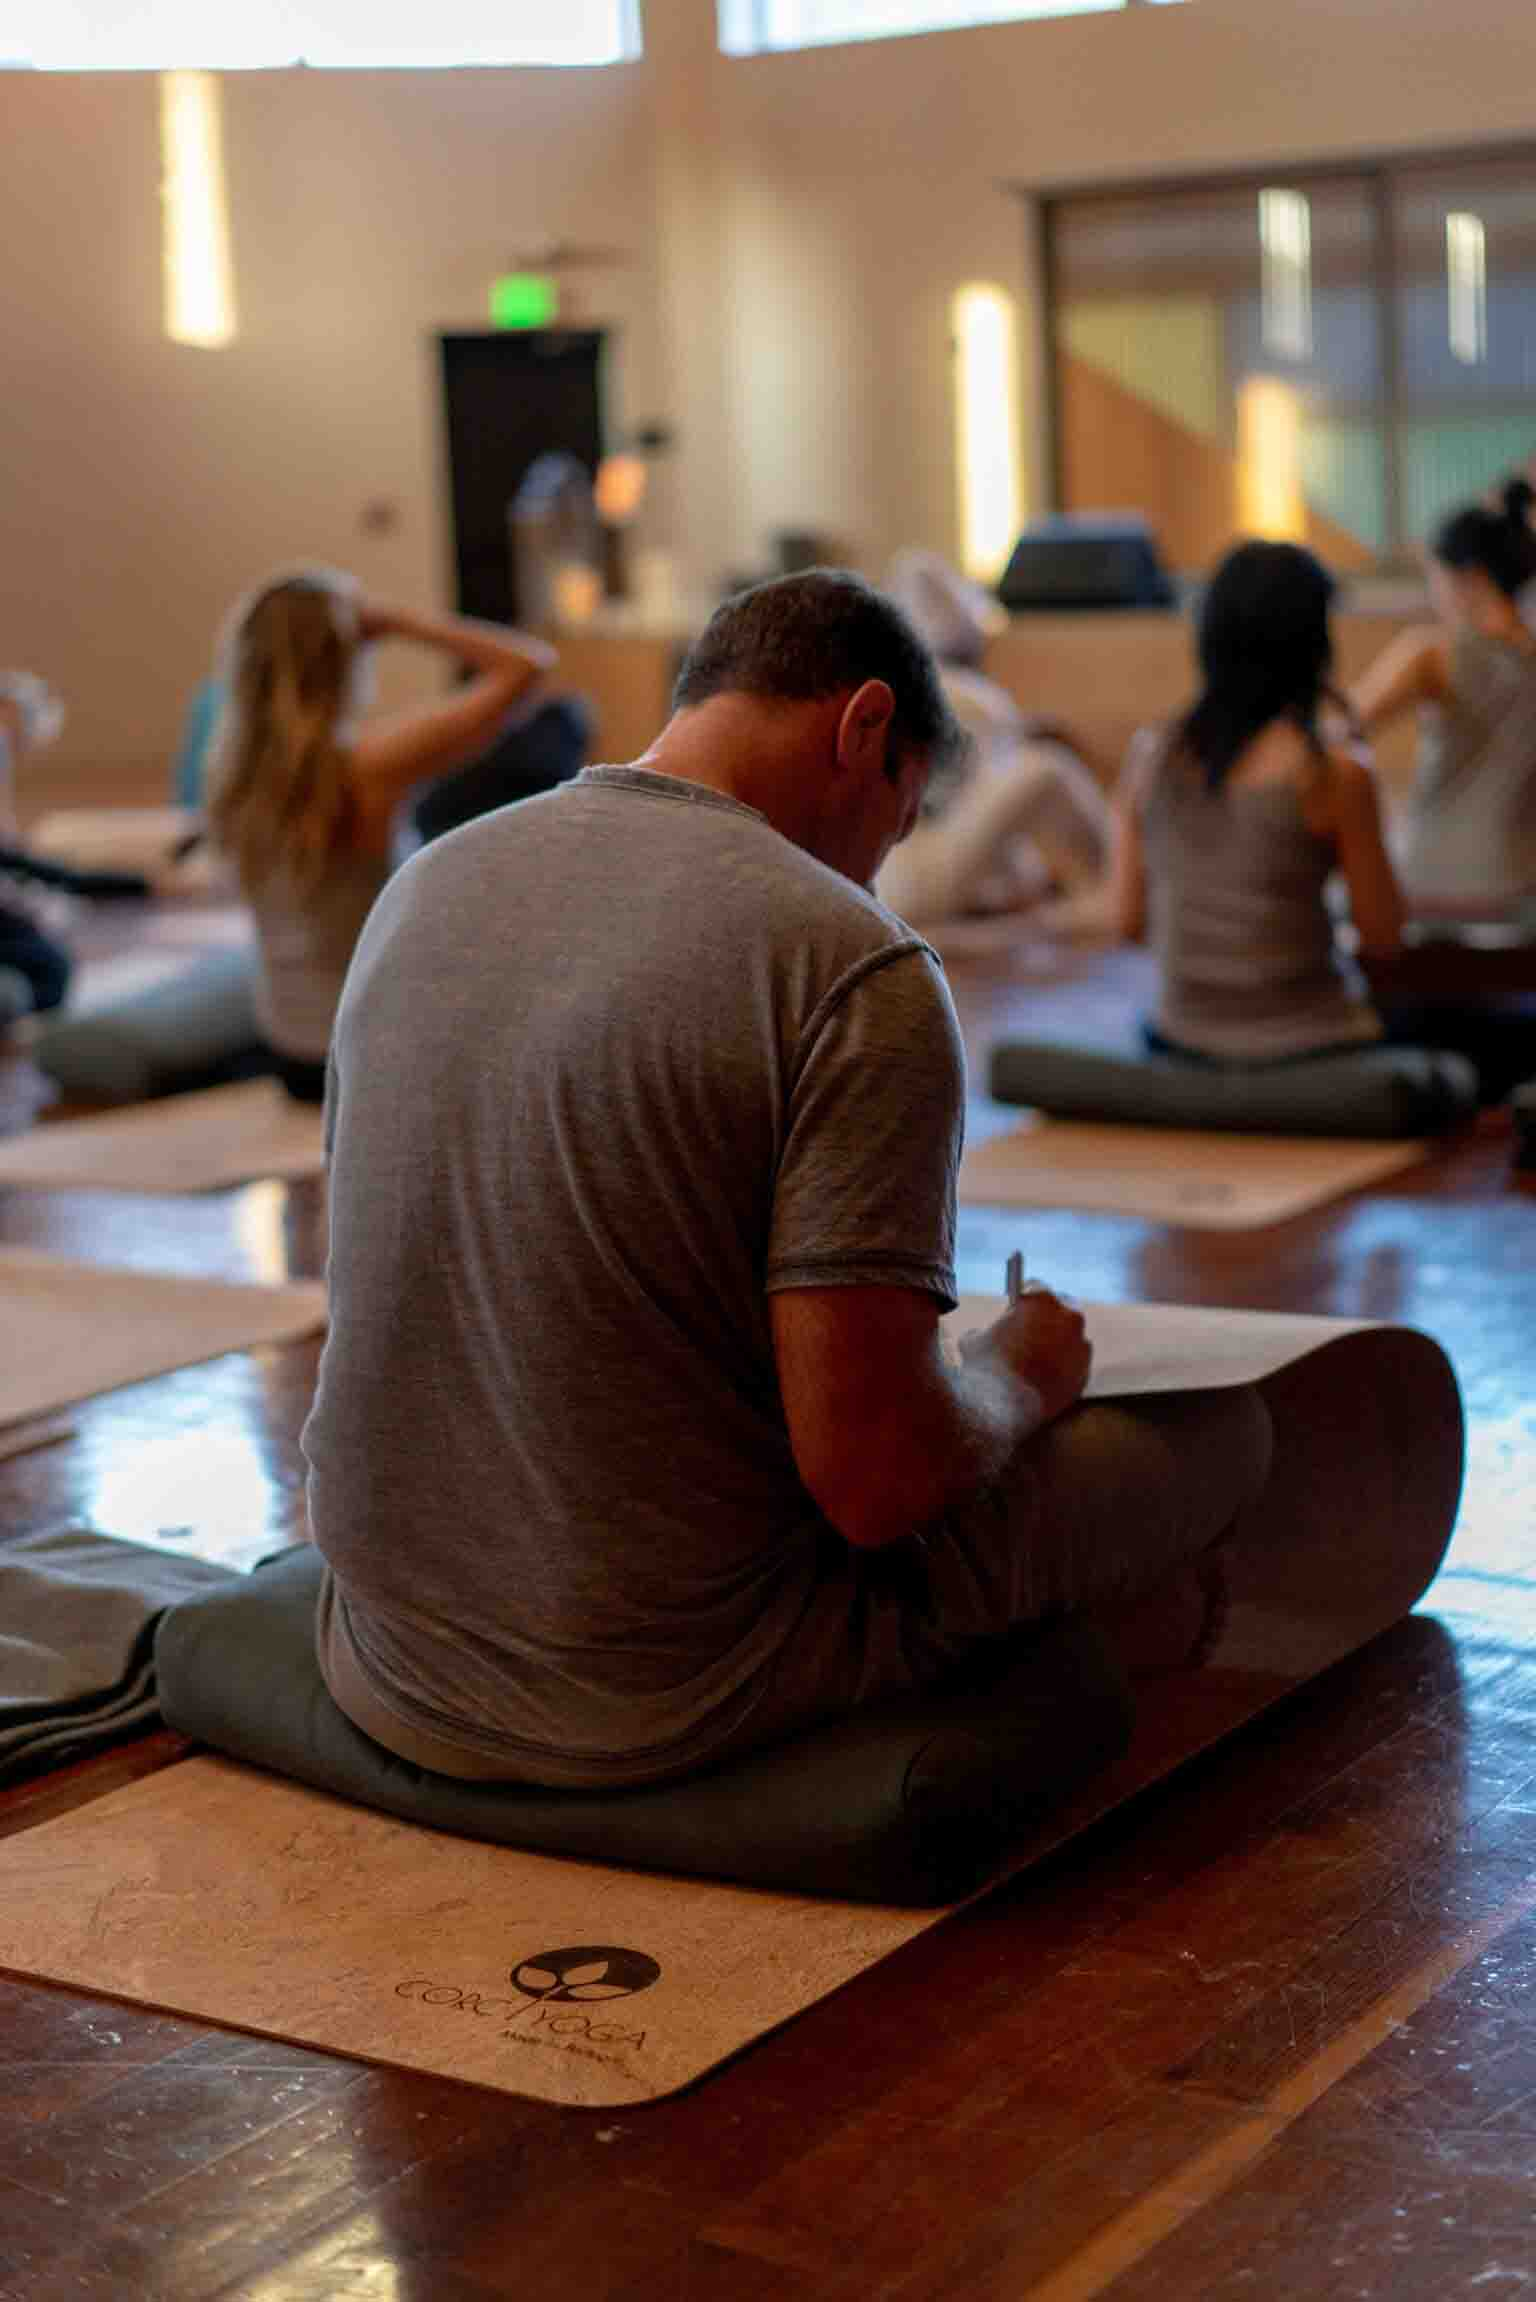 Man practicing yoga on cork yoga mat at Corc Yoga Wanderlust Event in Los Angeles